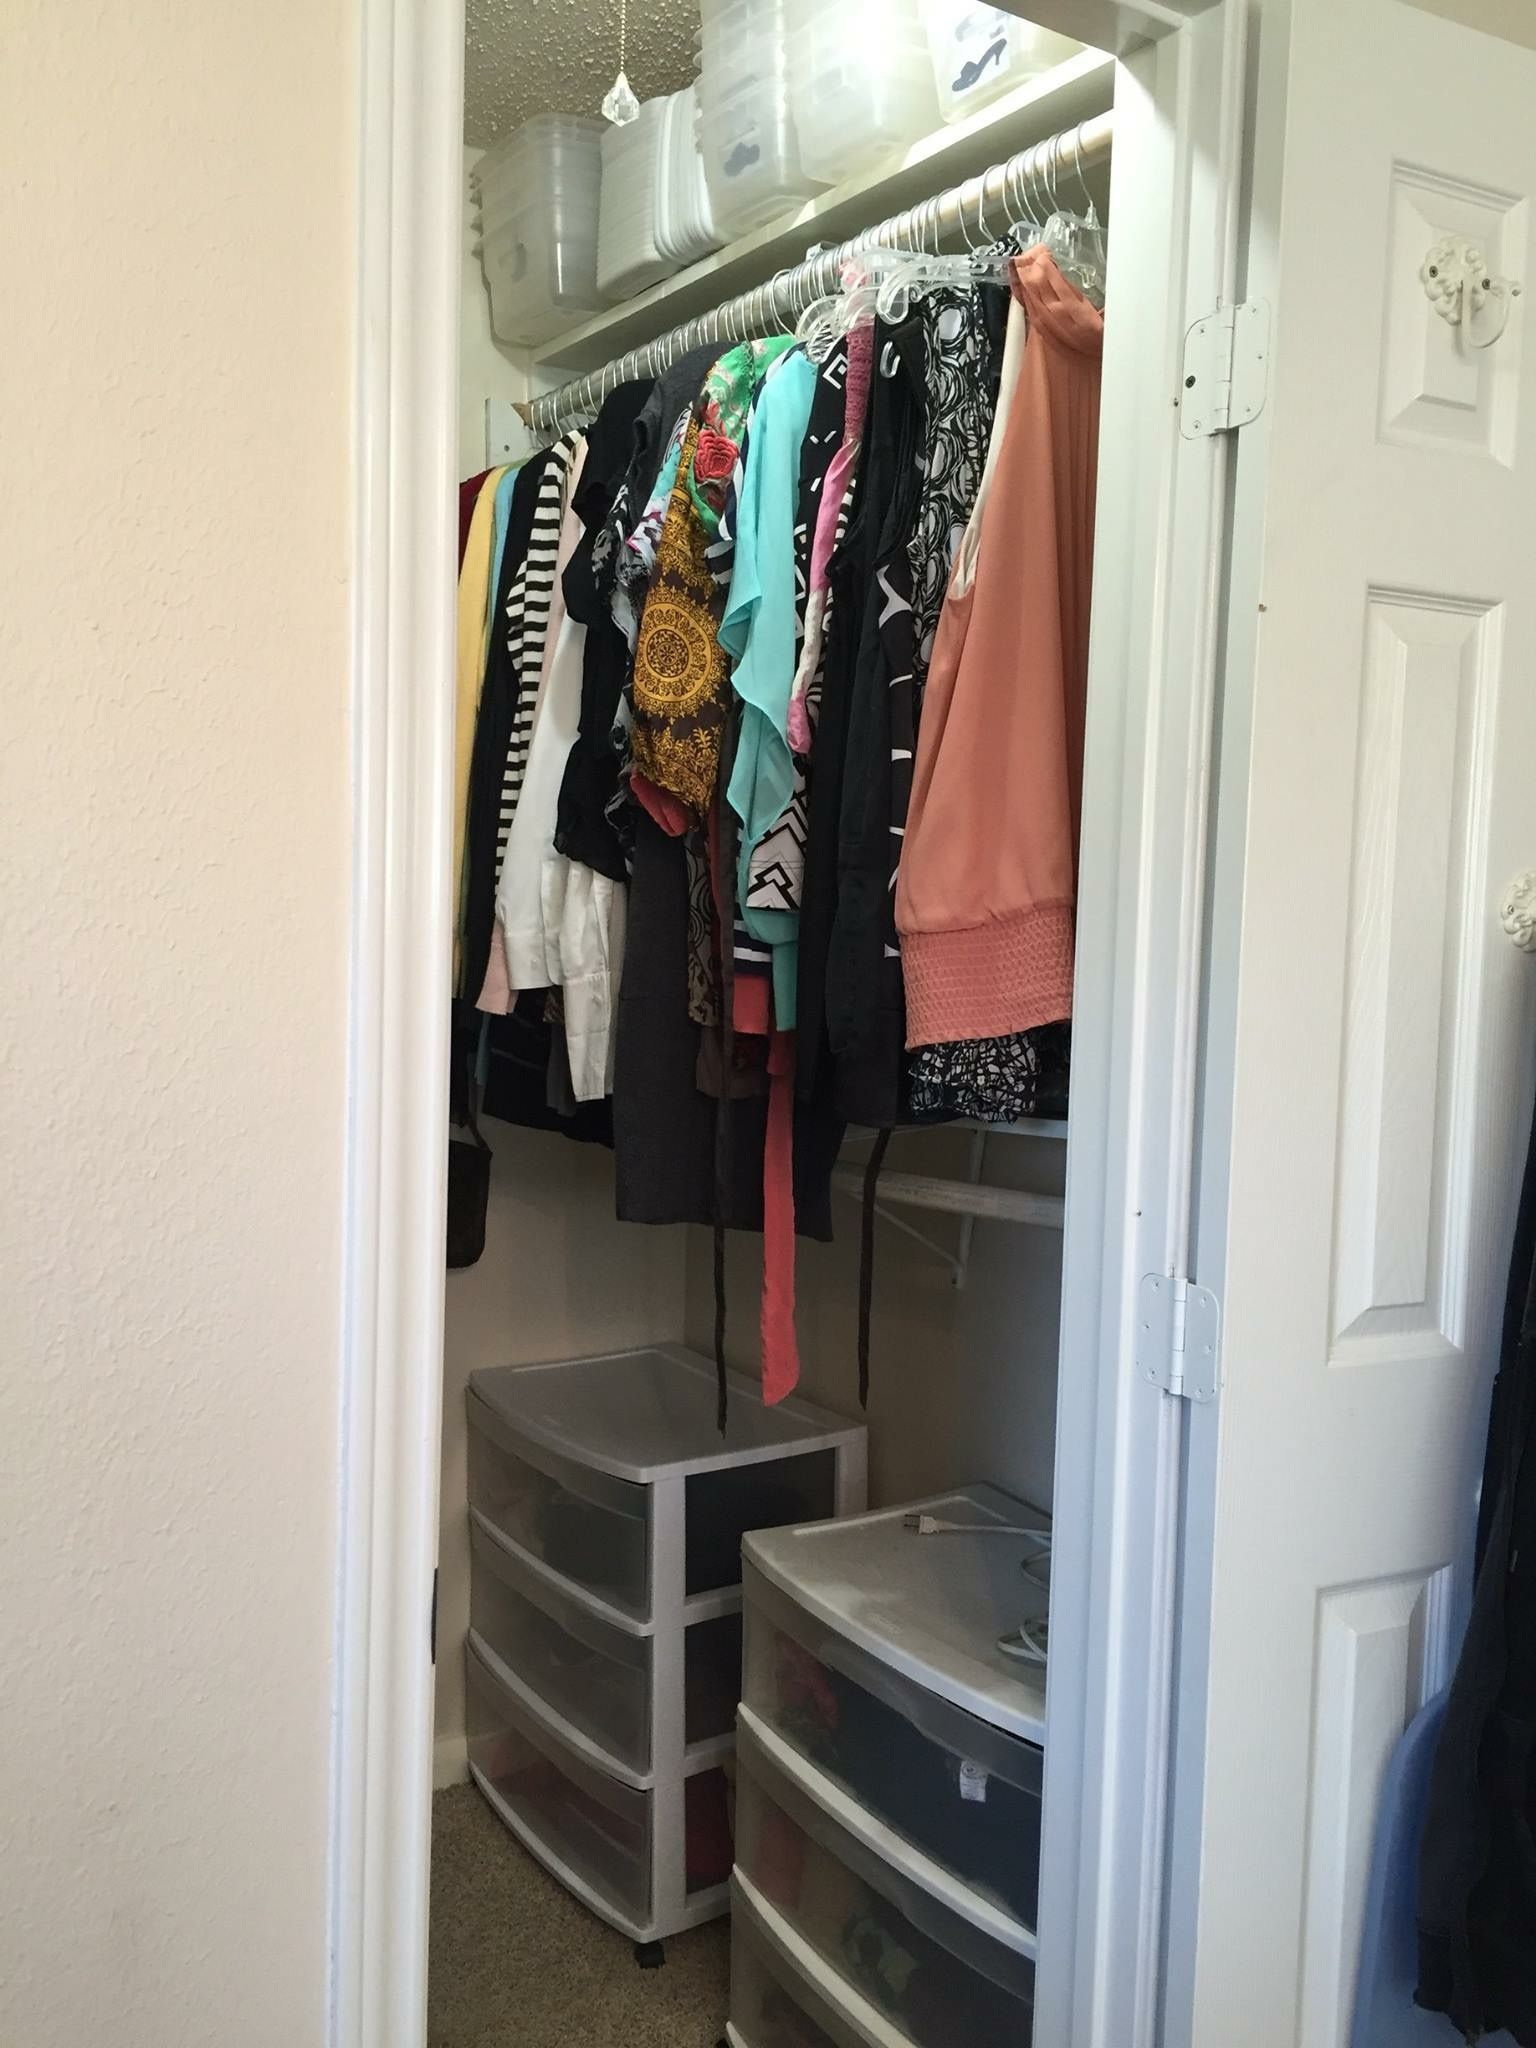 Kelly Gartner Is The Queen Of Houston Closet Organizing! The Decision: I  Made The Decision To Use A Houston Closet Organizing Service.